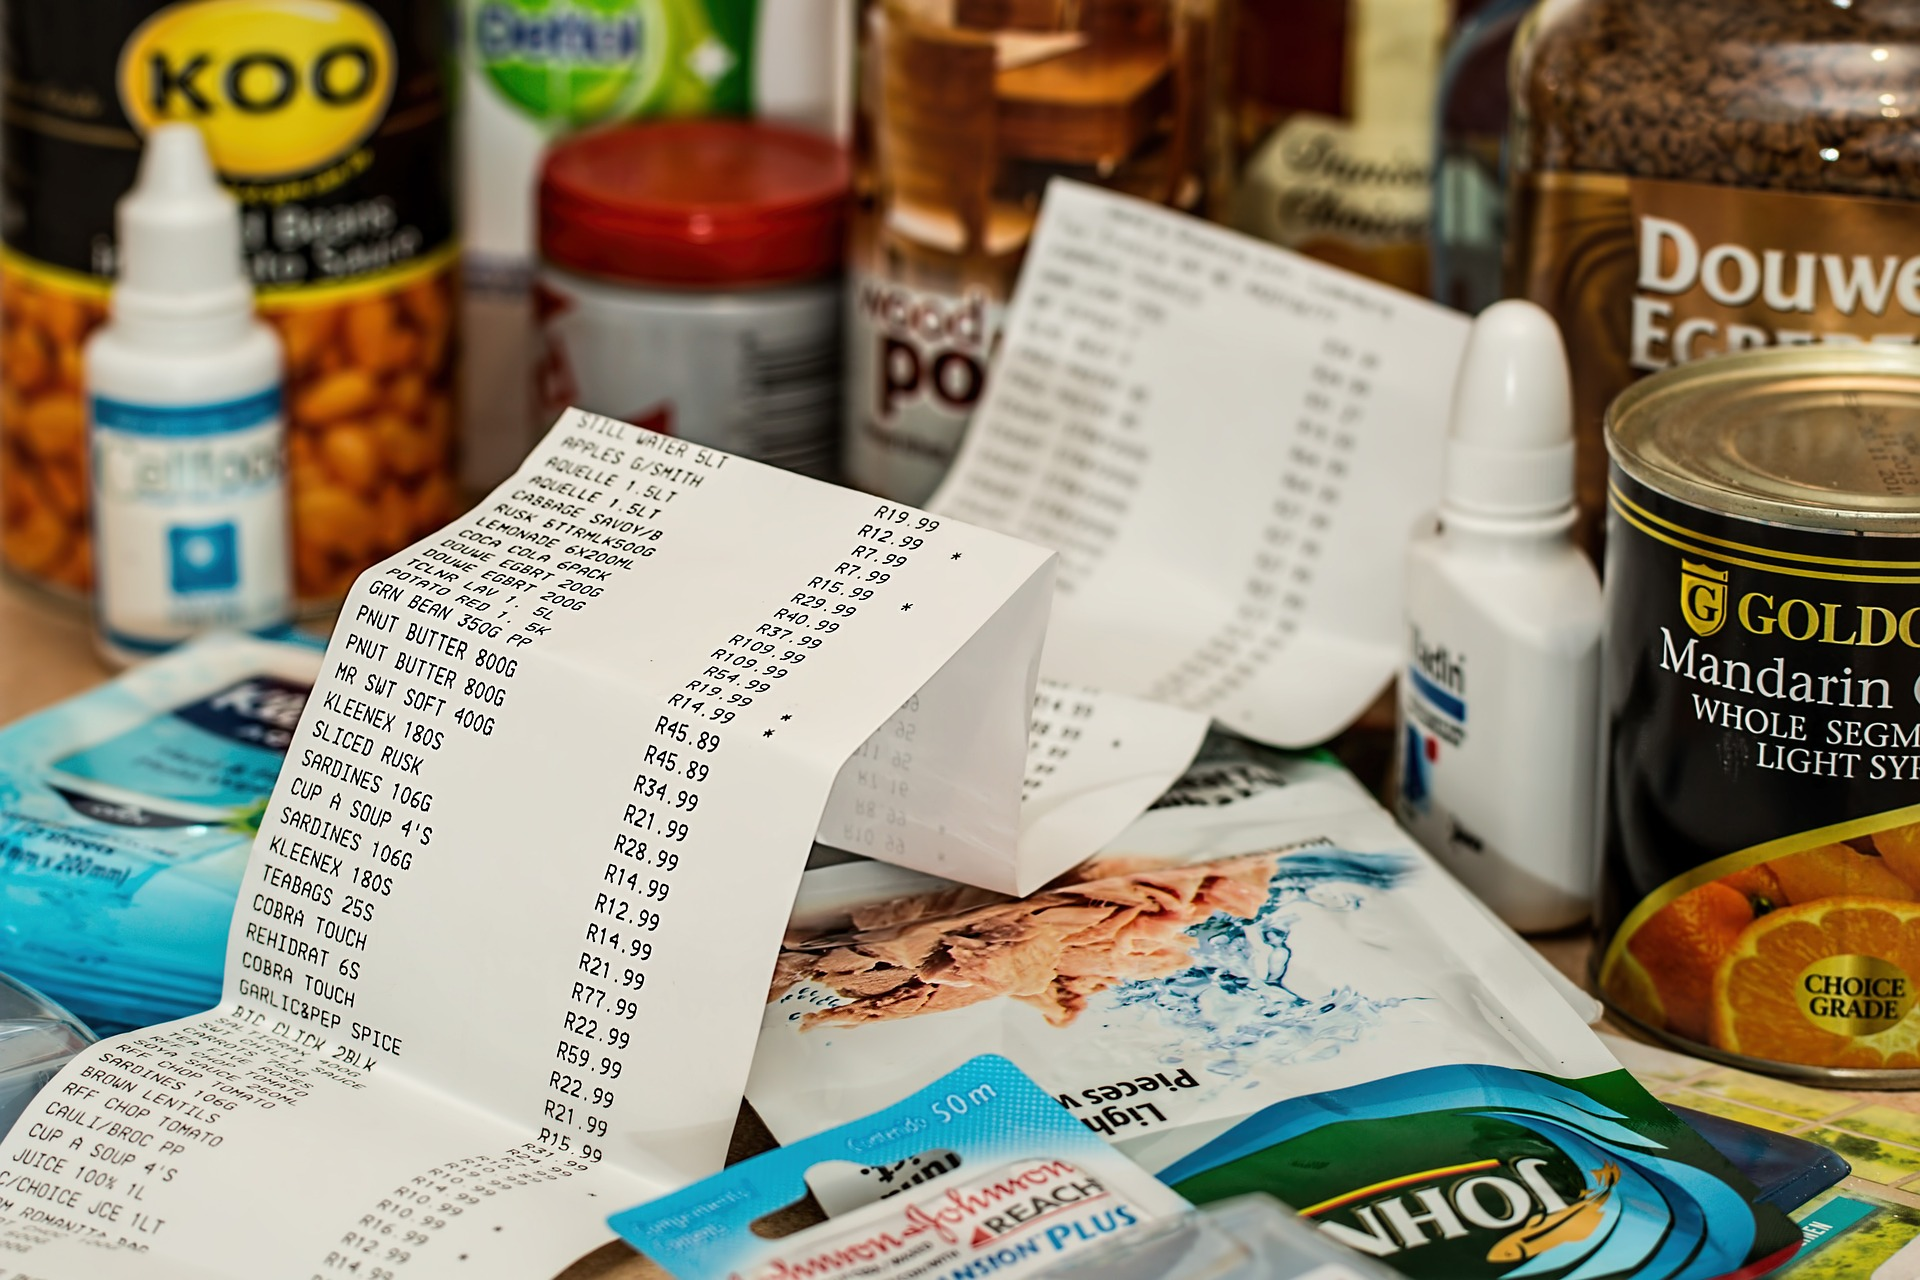 A receipt for grocery items. In the background are grocery items